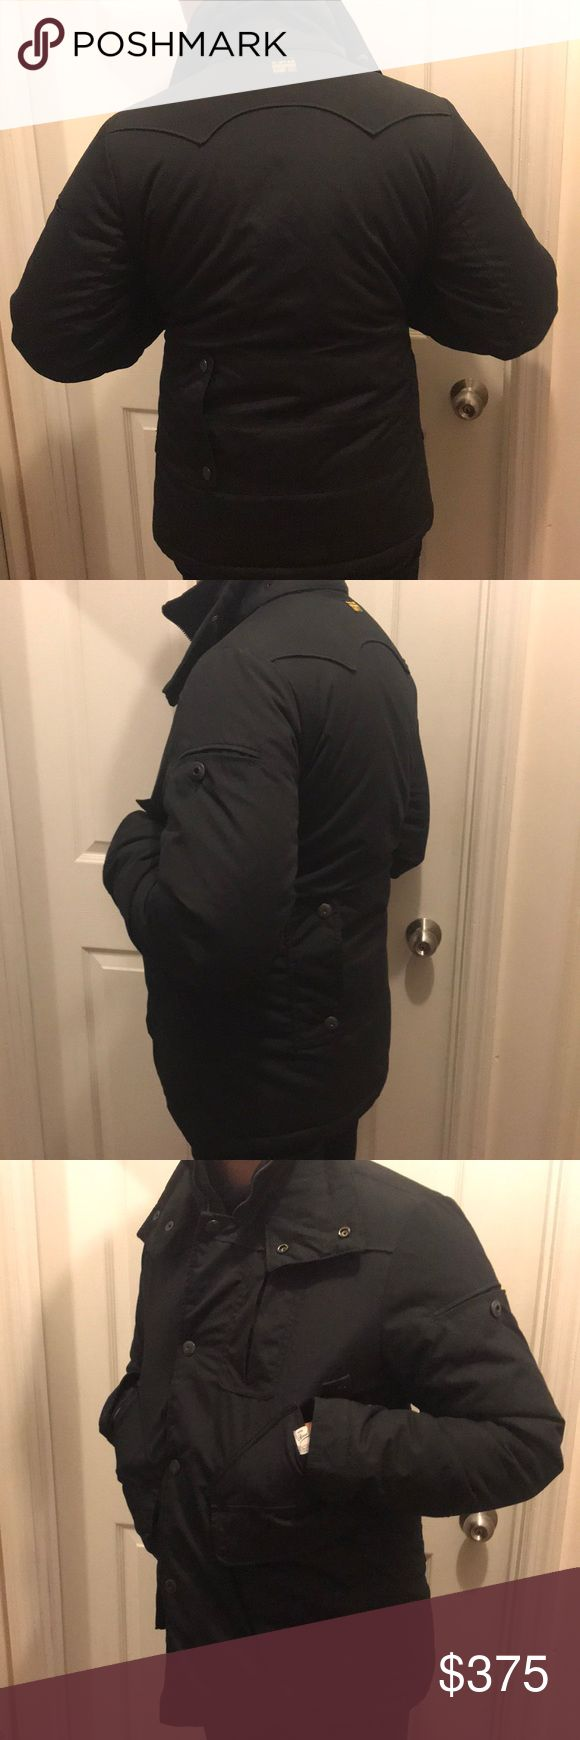 GSTAR BLACK PARKA MID LENGTH SIZE M GSTAR BLACK PARKA MID LENGTH SIZE M -65 POLYESTER -35 COTTON - Great for the winter season  -LIMITED EDITION G-Star Jackets & Coats Puffers